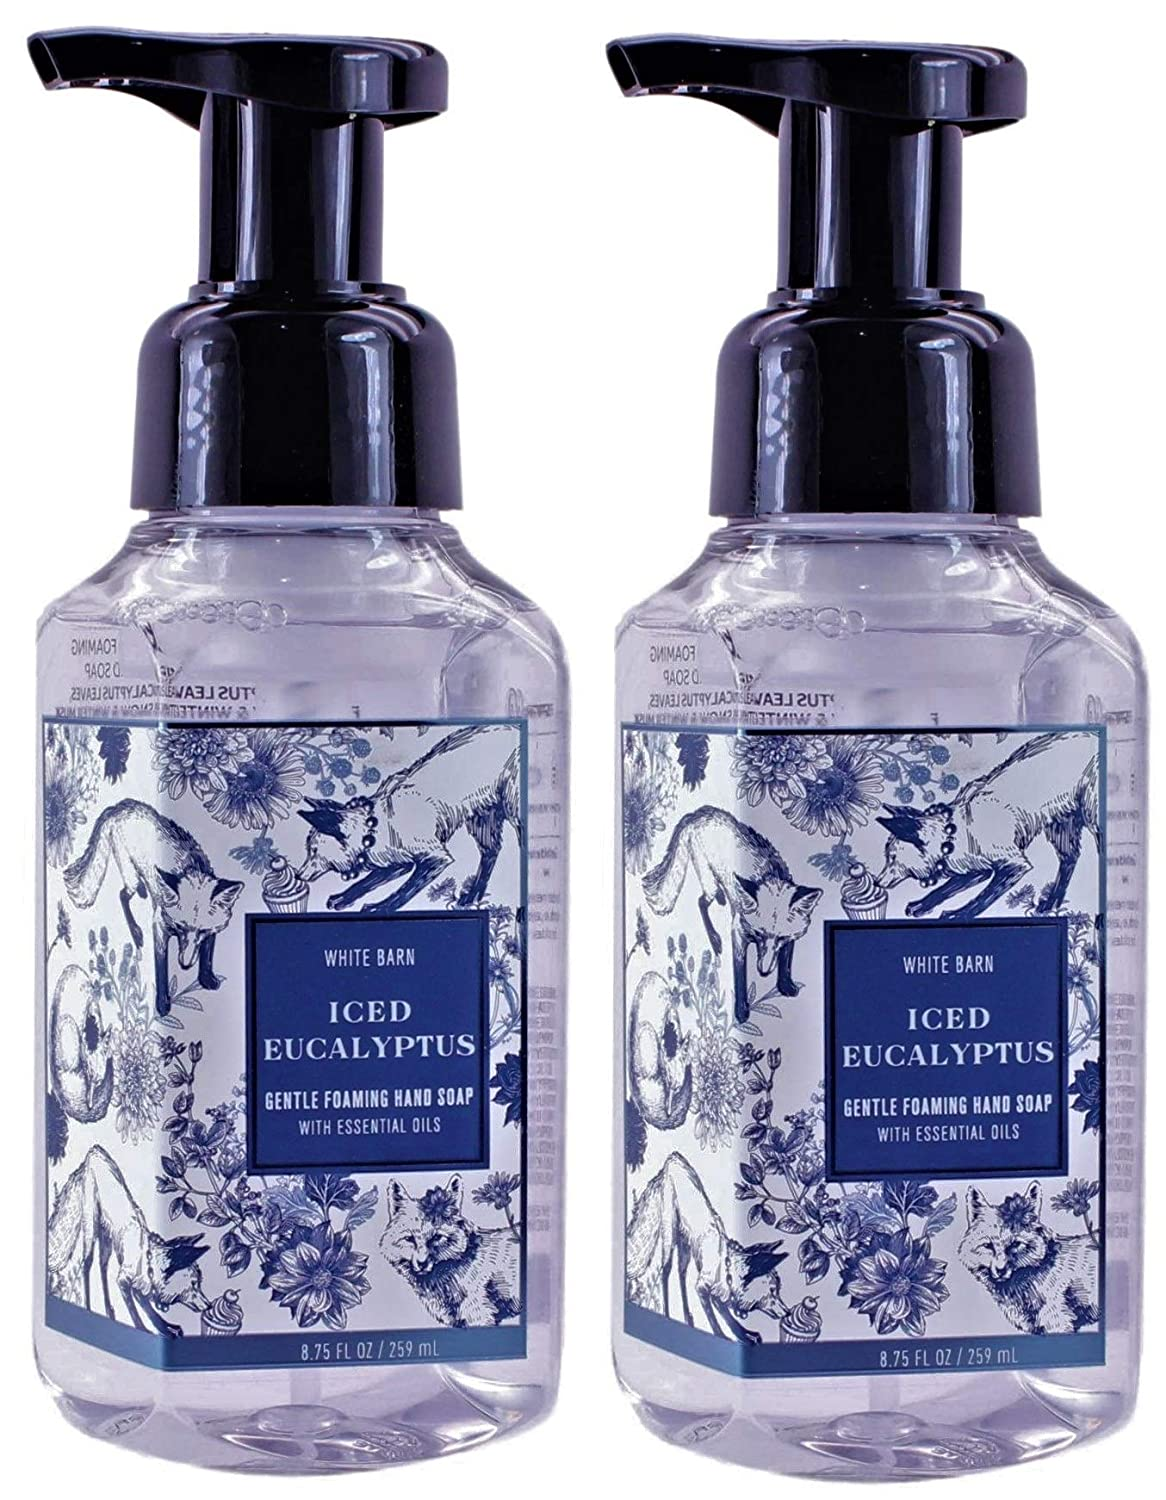 White Barn Bath and Body Works Iced Eucalyptus 8.75 ounce (2 Pack) Gentle Foaming Hand Soap